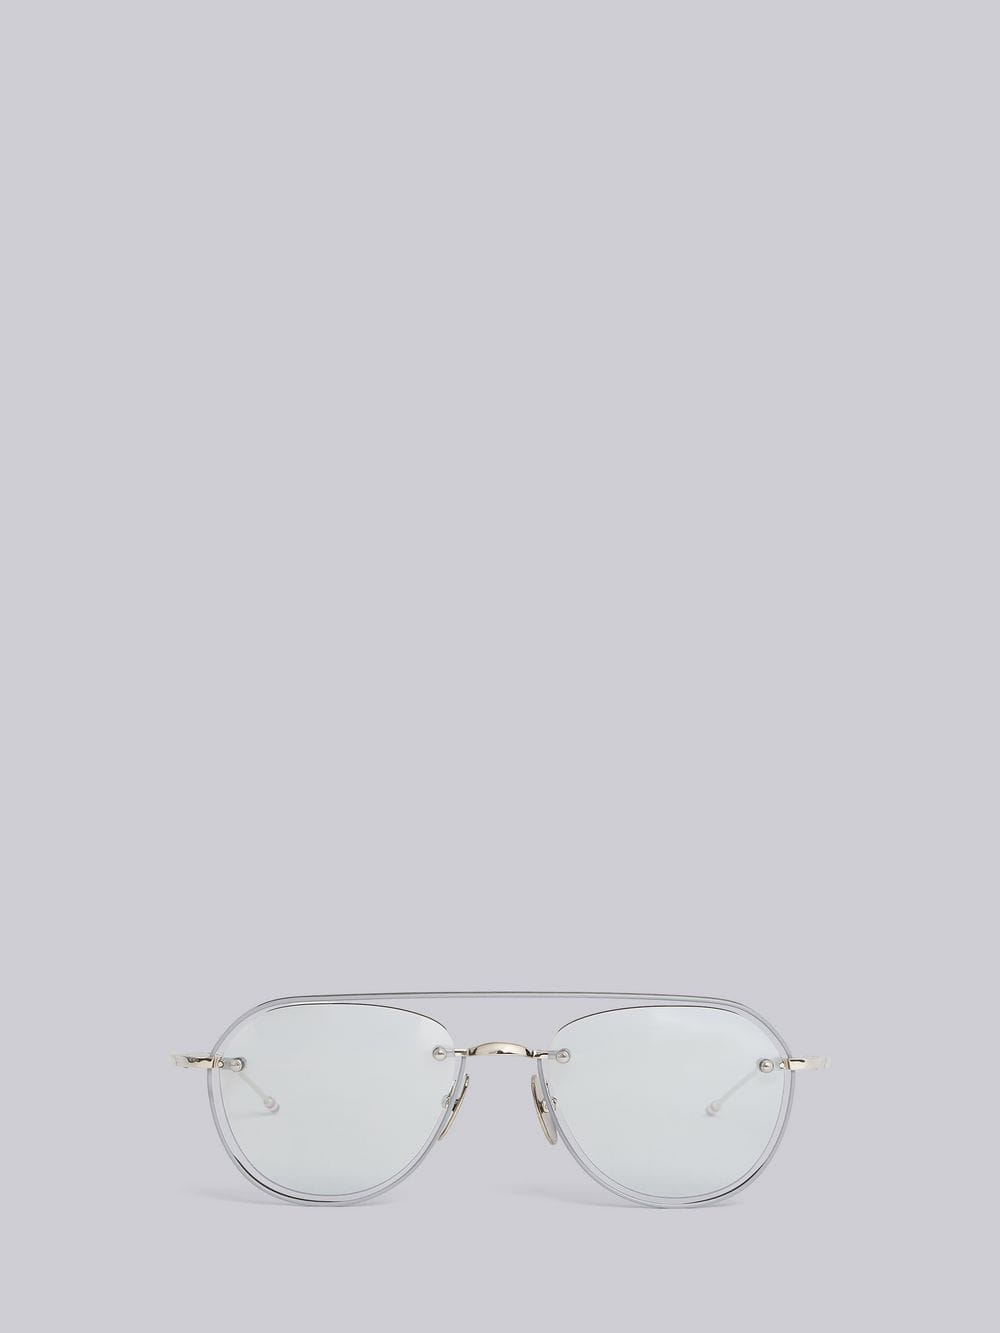 Aviator Sunglasses 2.jpg